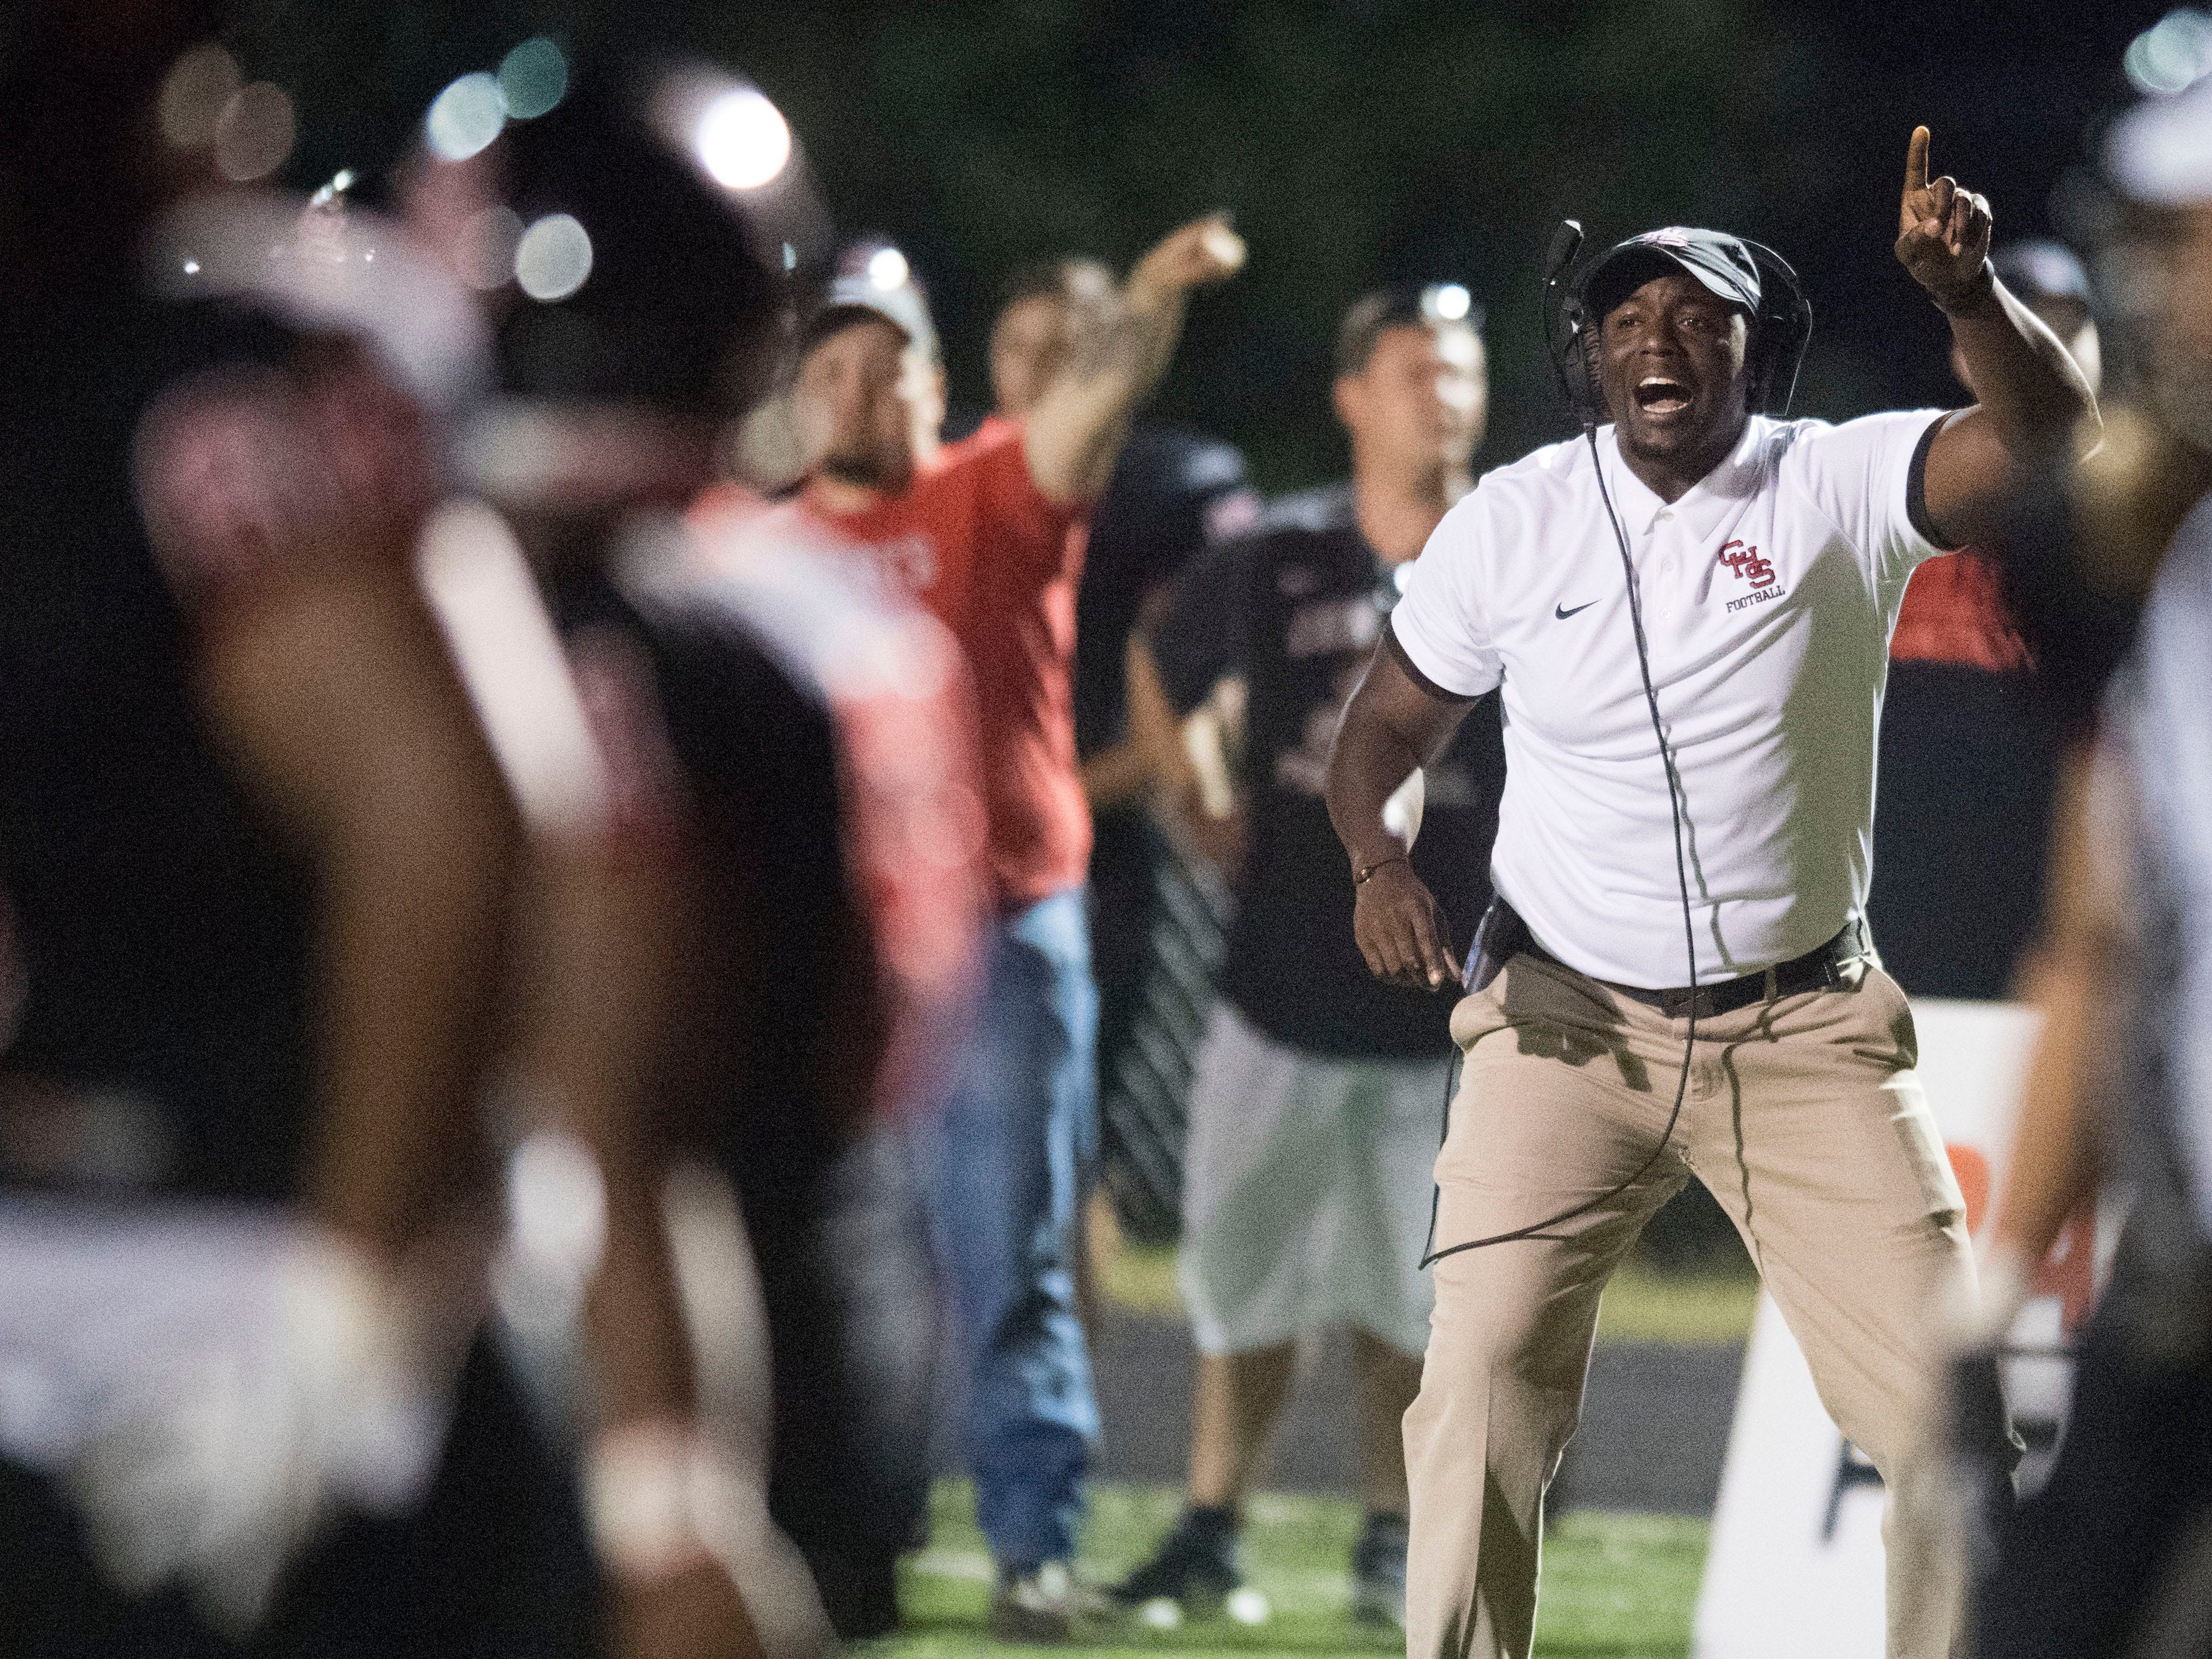 Central head coach Bryson Rosser yells out directions to his team during the football game against Fulton on Thursday, August 23, 2018.